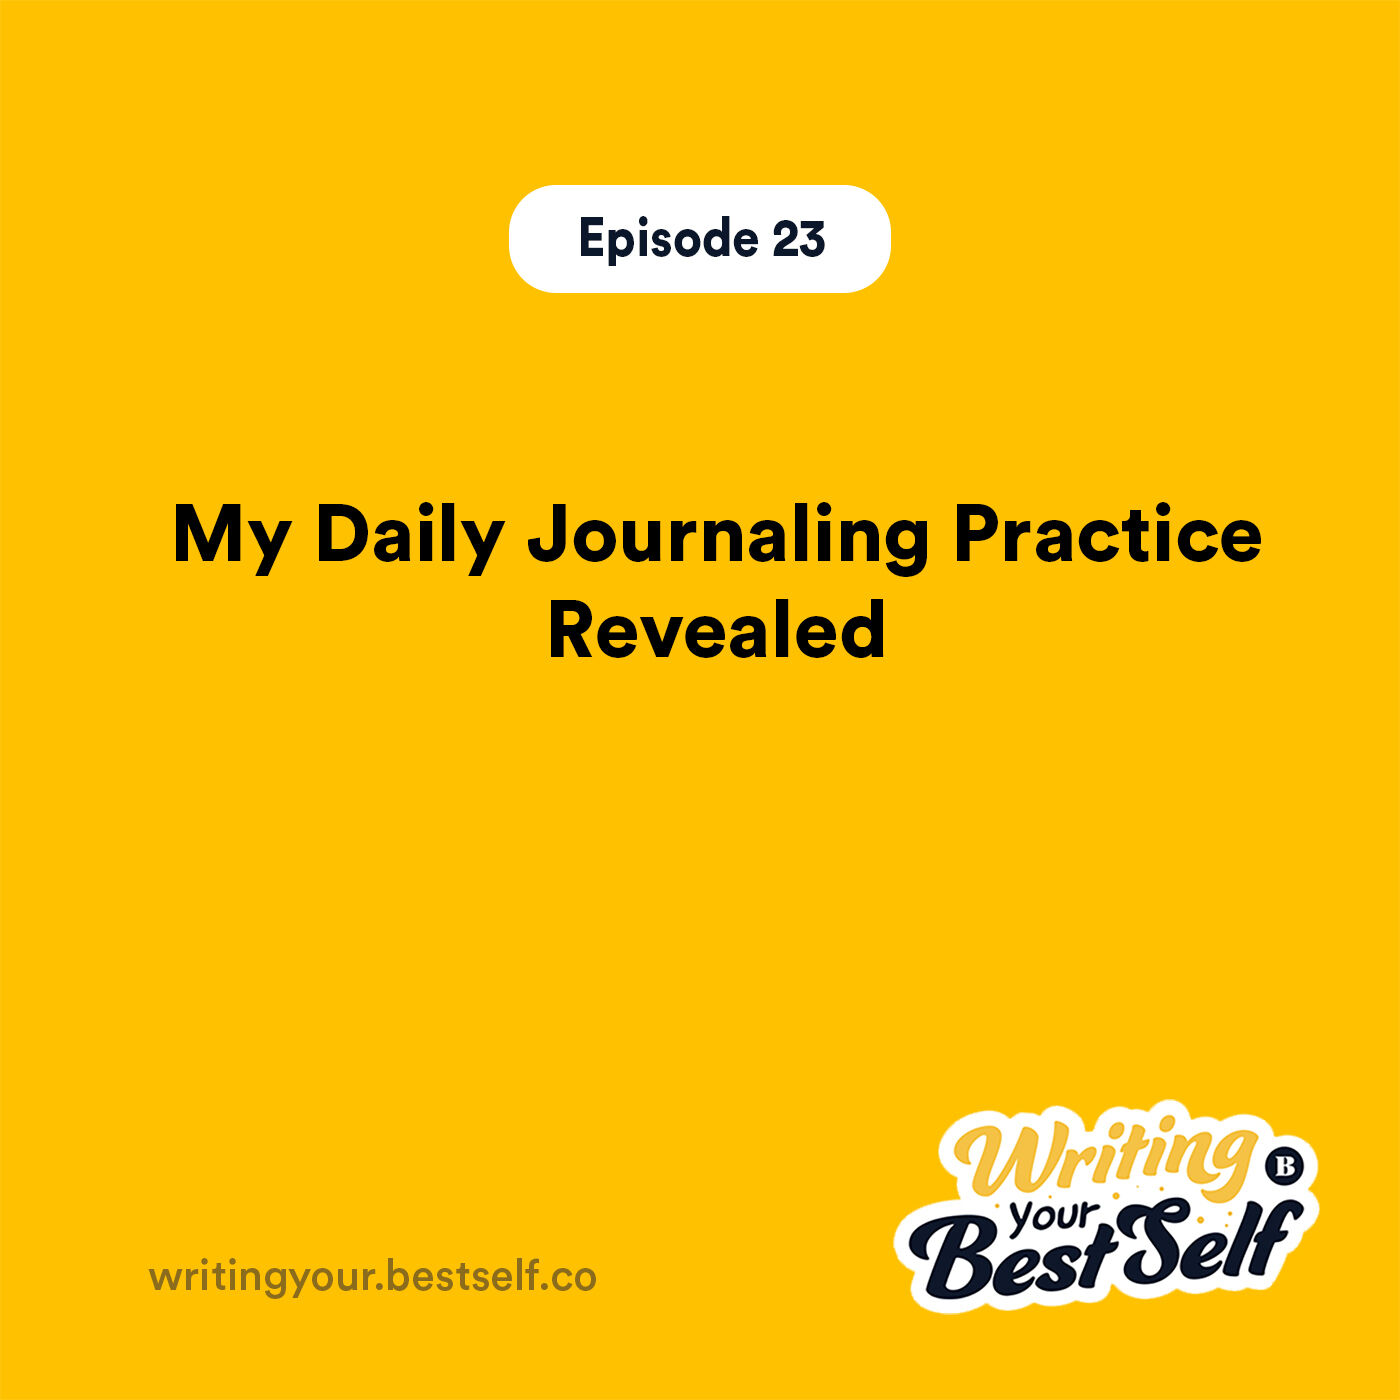 My Daily Journaling Practice Revealed